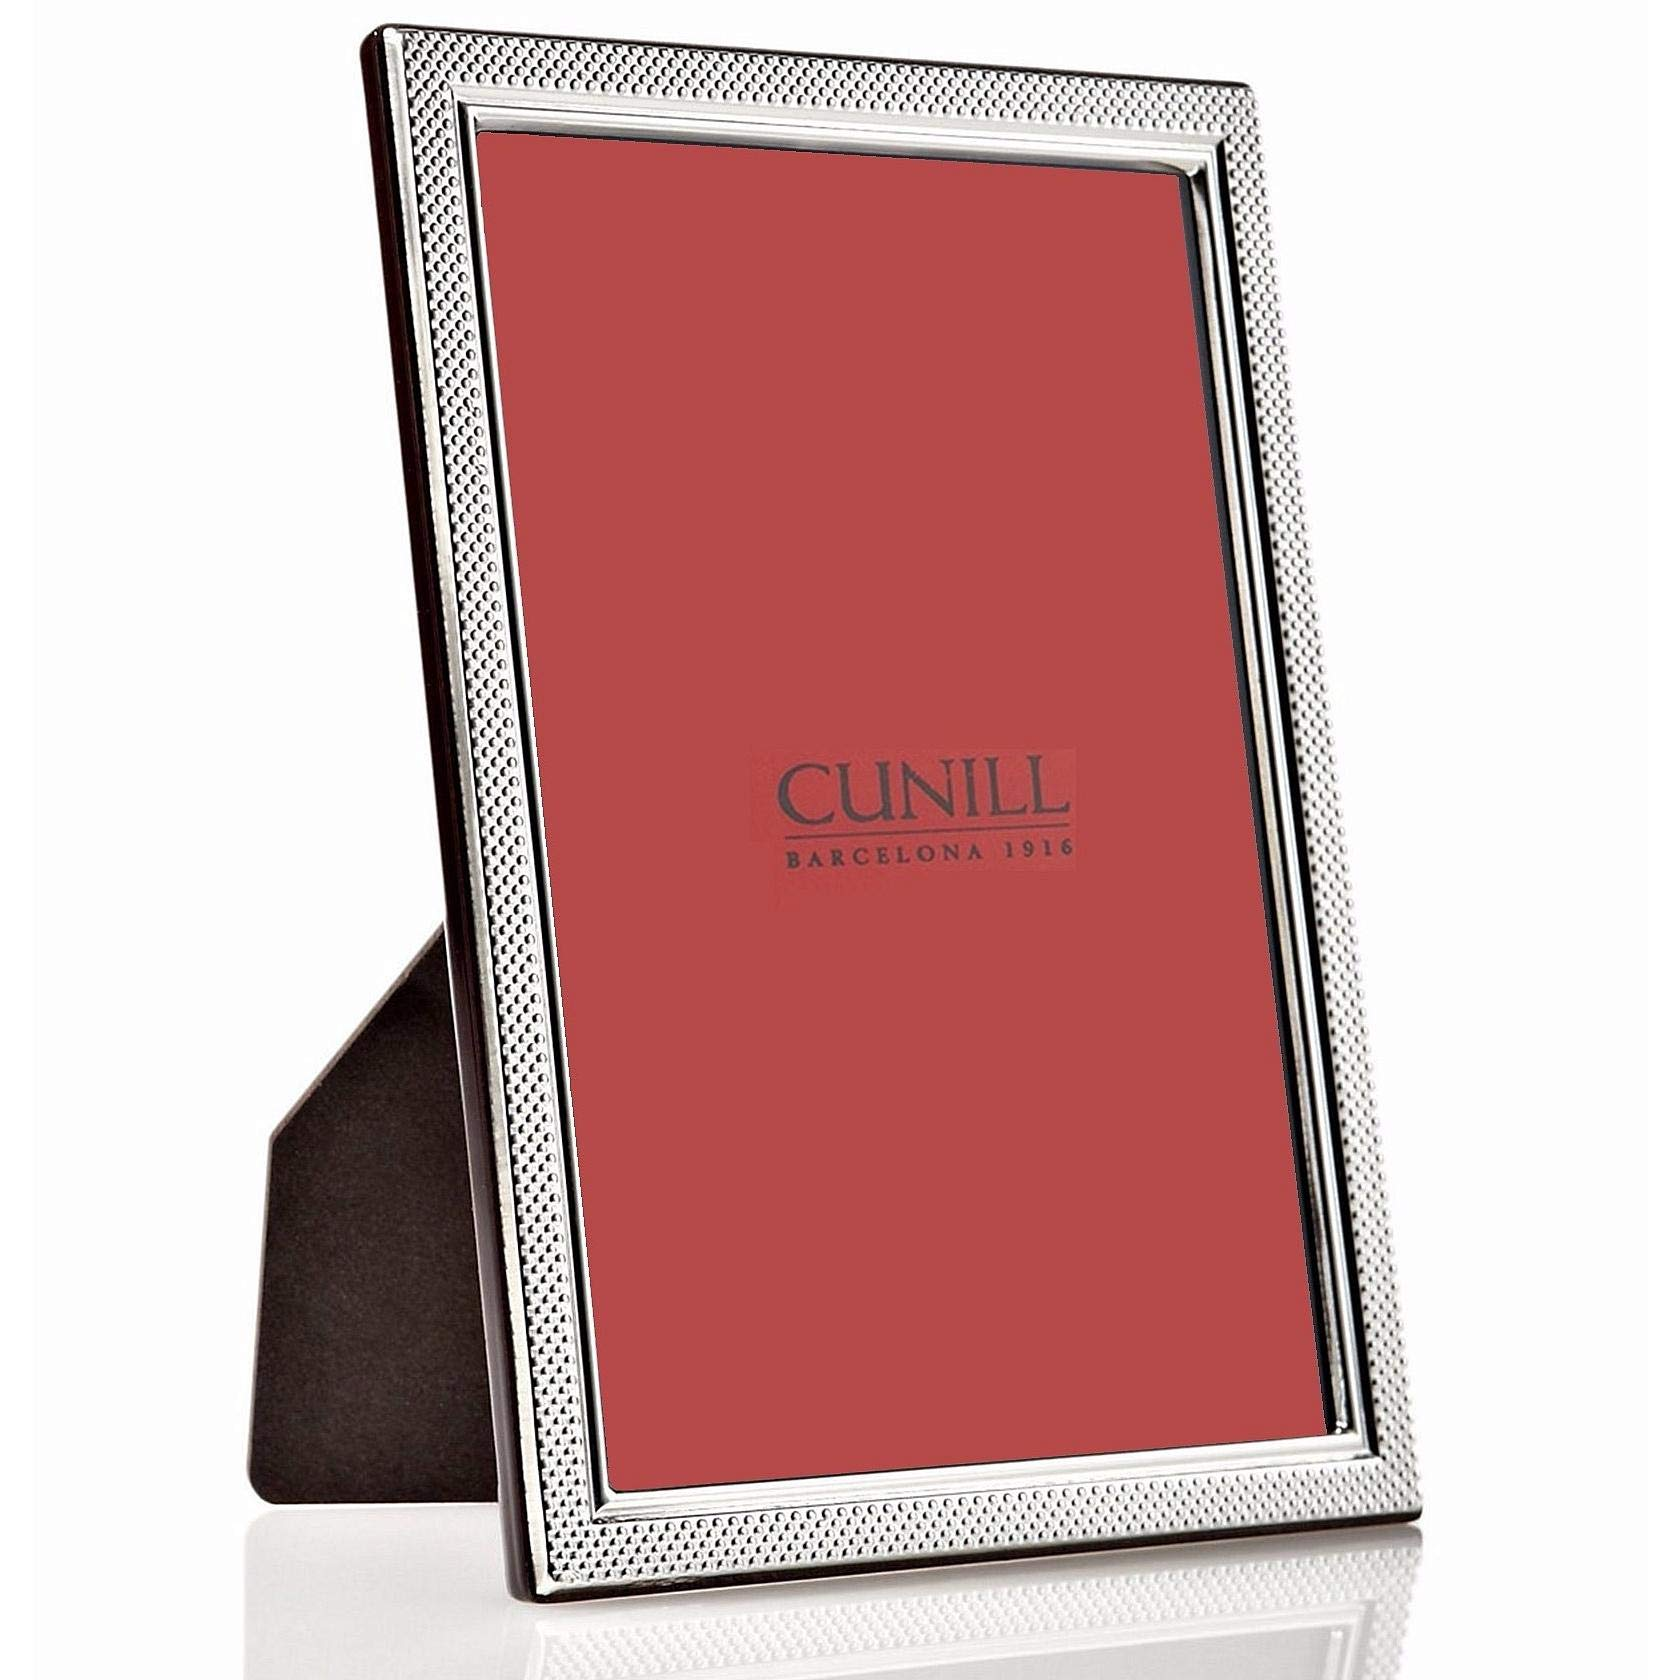 Droplets Fine Sterling Silver 5x7 Frame by Cunill(r) - 5x7 by Cunill Silver(r)